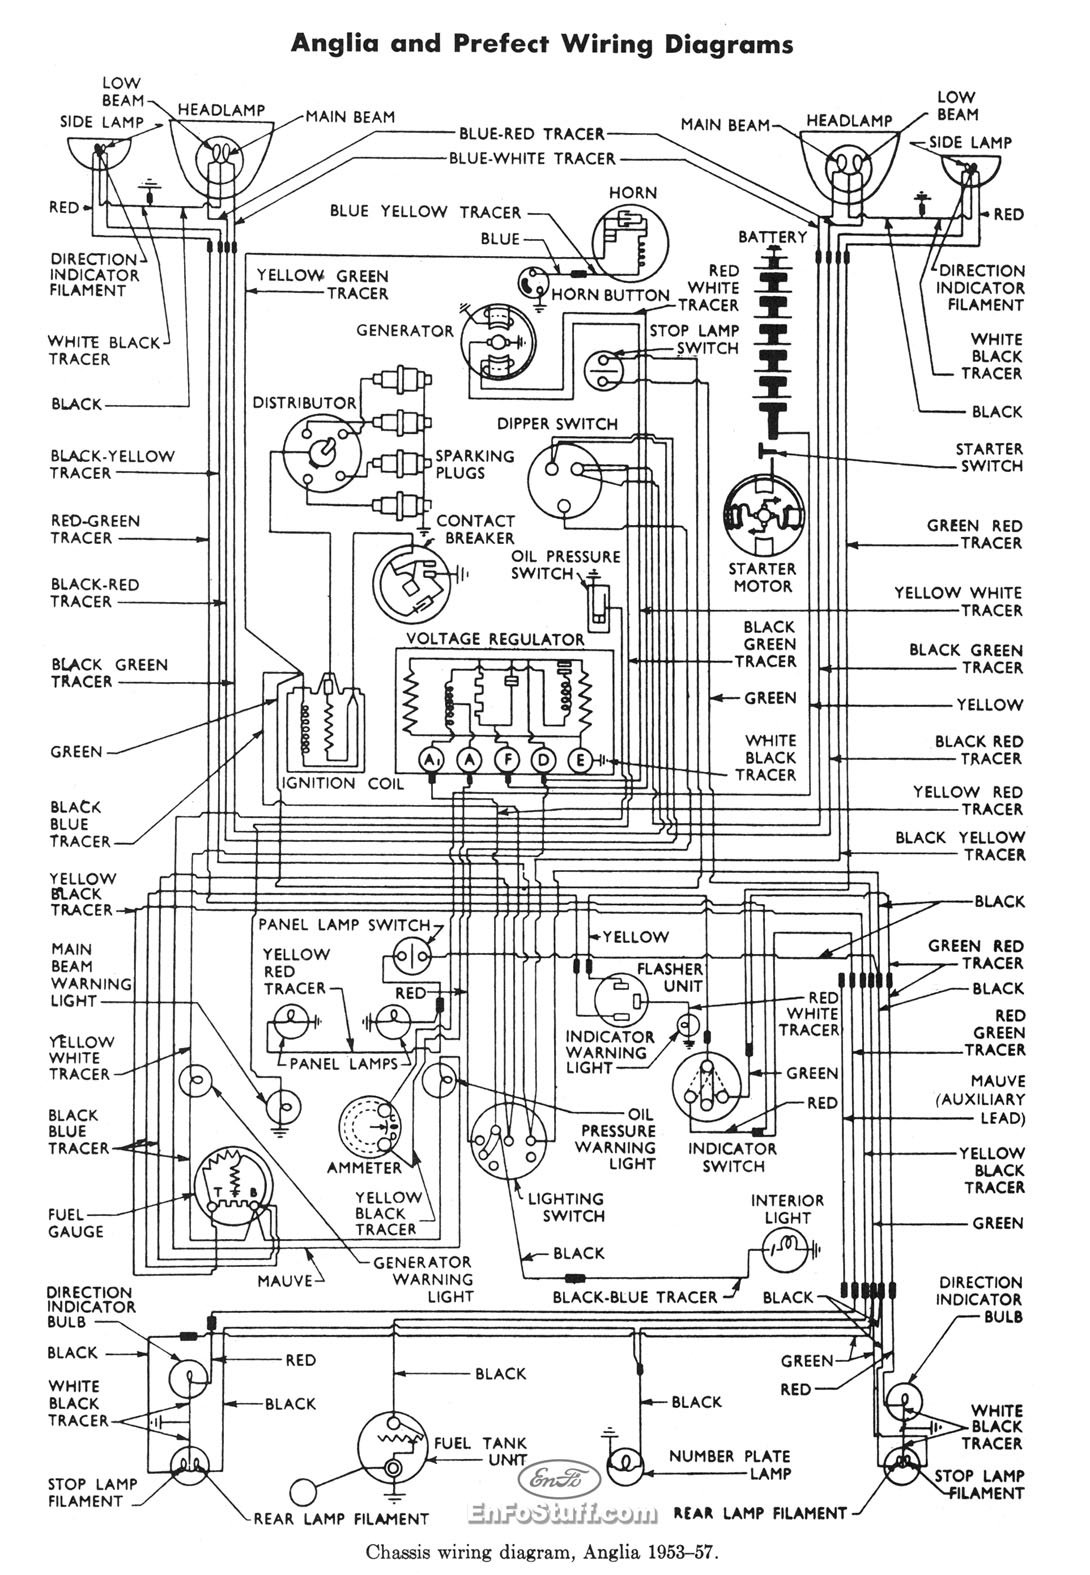 harley ignition switch wiring diagram with Ford F800 Wiring Schematic on Viewtopic further 5879 Wiring Diagrams Online 65 03 A further Basic Electrical Wiring Diagrams tPzkAoilWy3 gRI2gF0PSZwKbxv9bs6TvxtA0bHT470 in addition 282249101622349651 moreover 775917 Need Exploded Parts Diagram 1994 Evo.